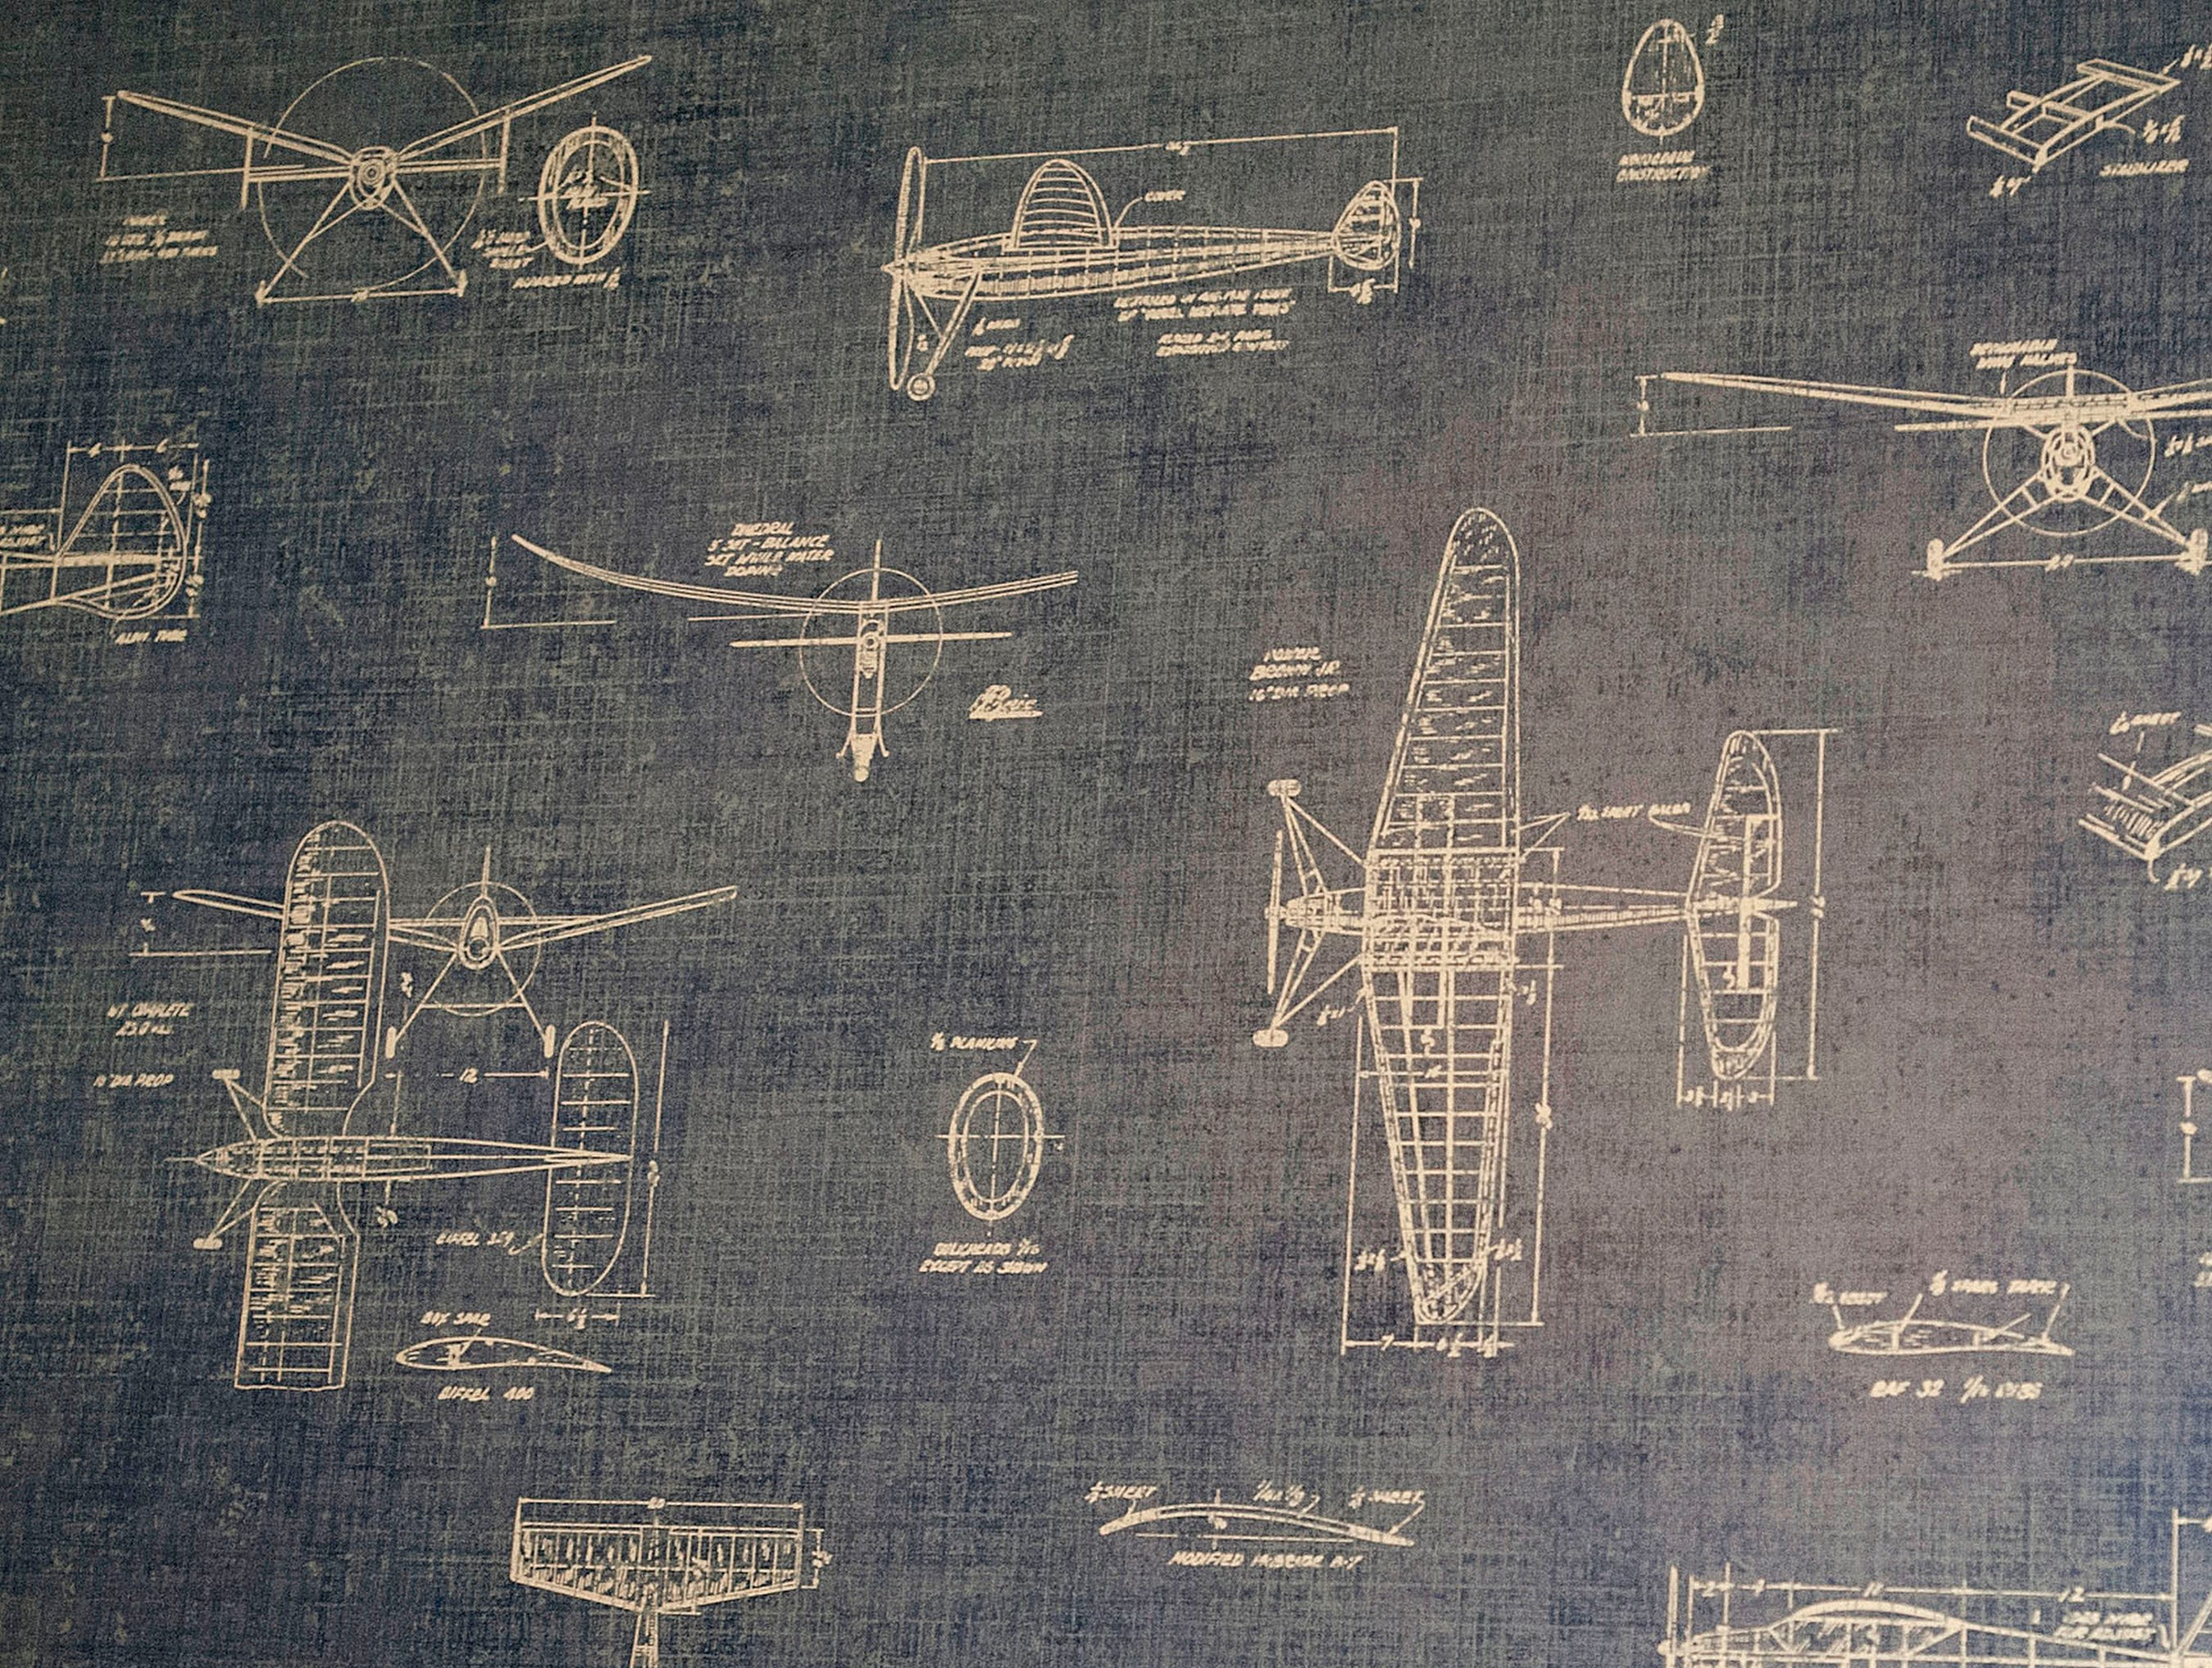 Ellis Hanna's airplane-themed bedroom on the 2nd floor includes airplane blueprint wallpaper.01 March 2019